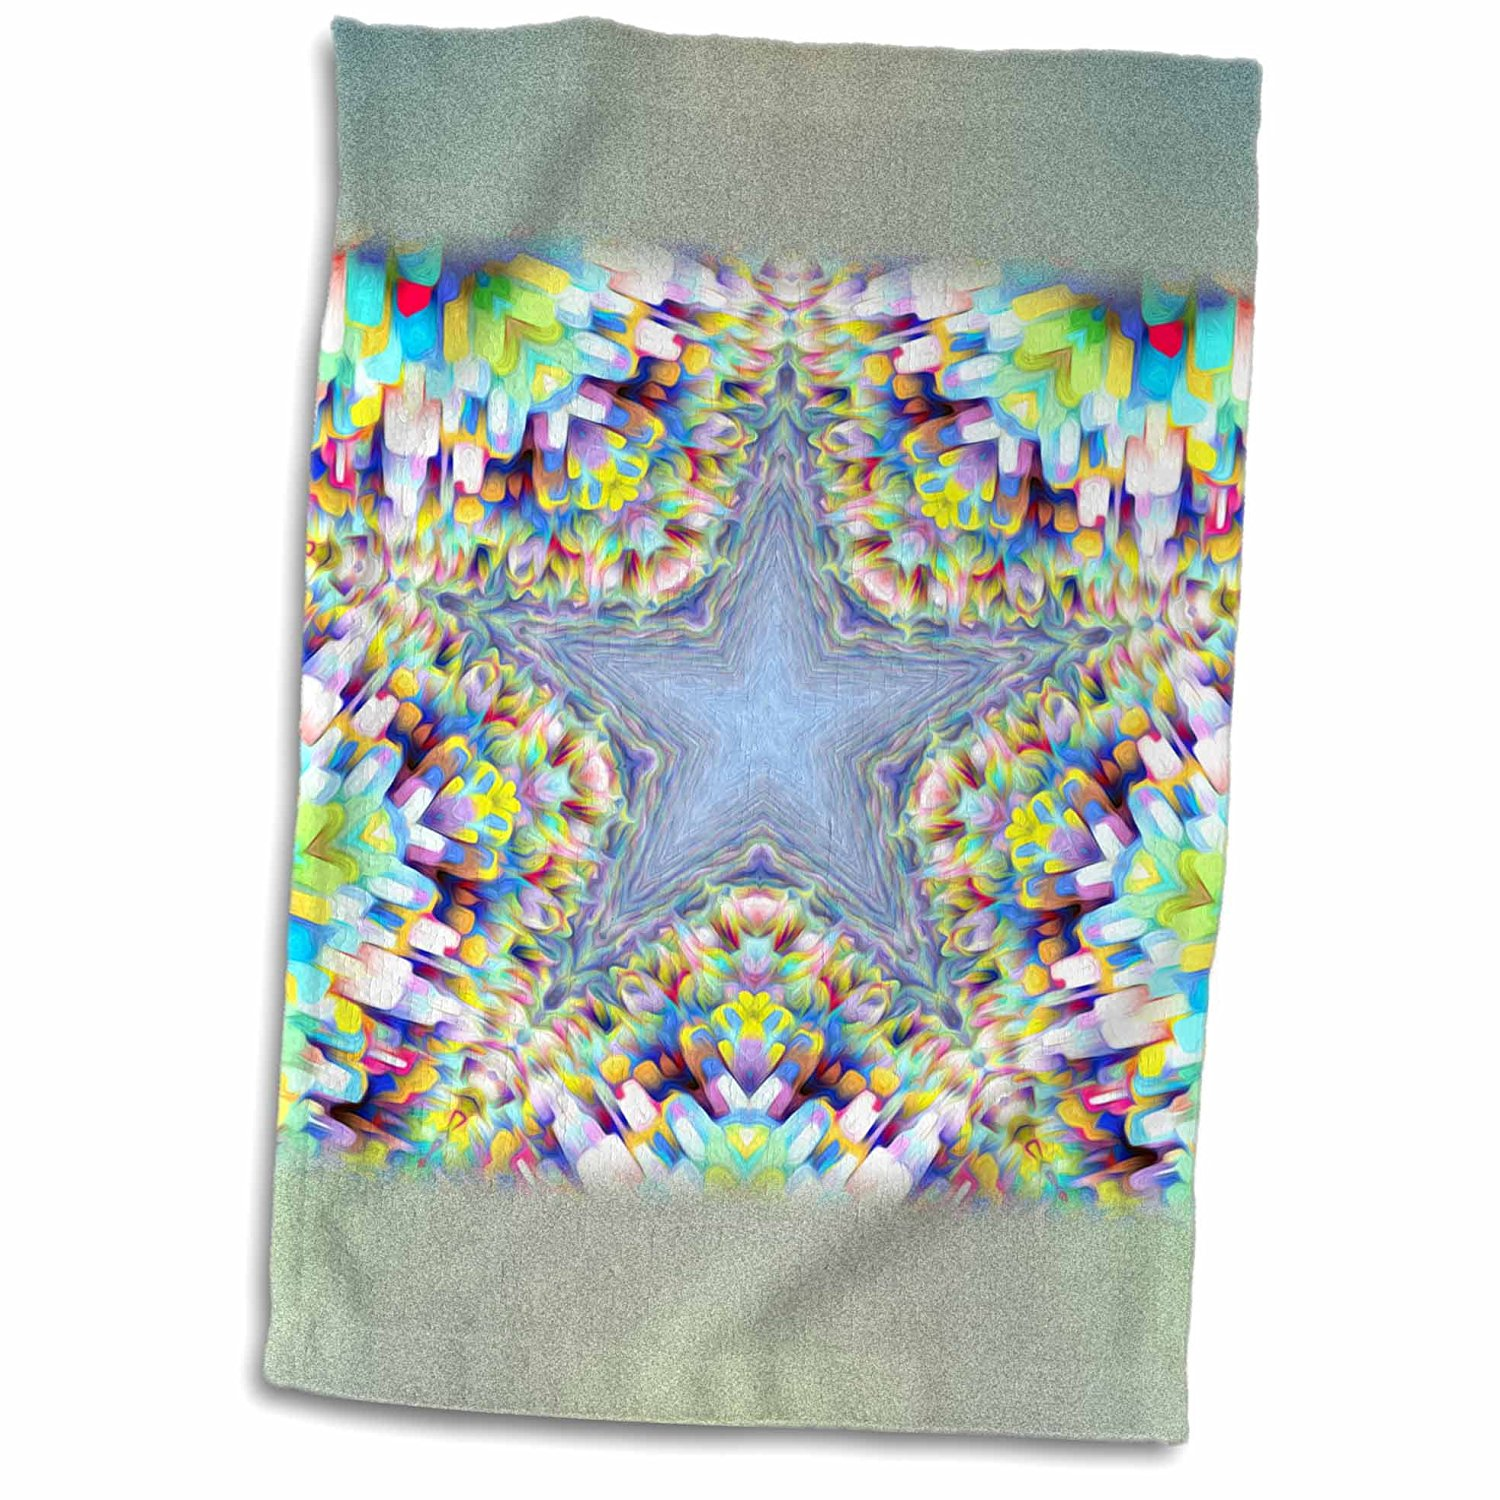 3dRose Phil Perkins - Abstract - Colorful Abstract Star - multicolored star design with abstract shapes - 12x18 Towel (twl_243437_1)